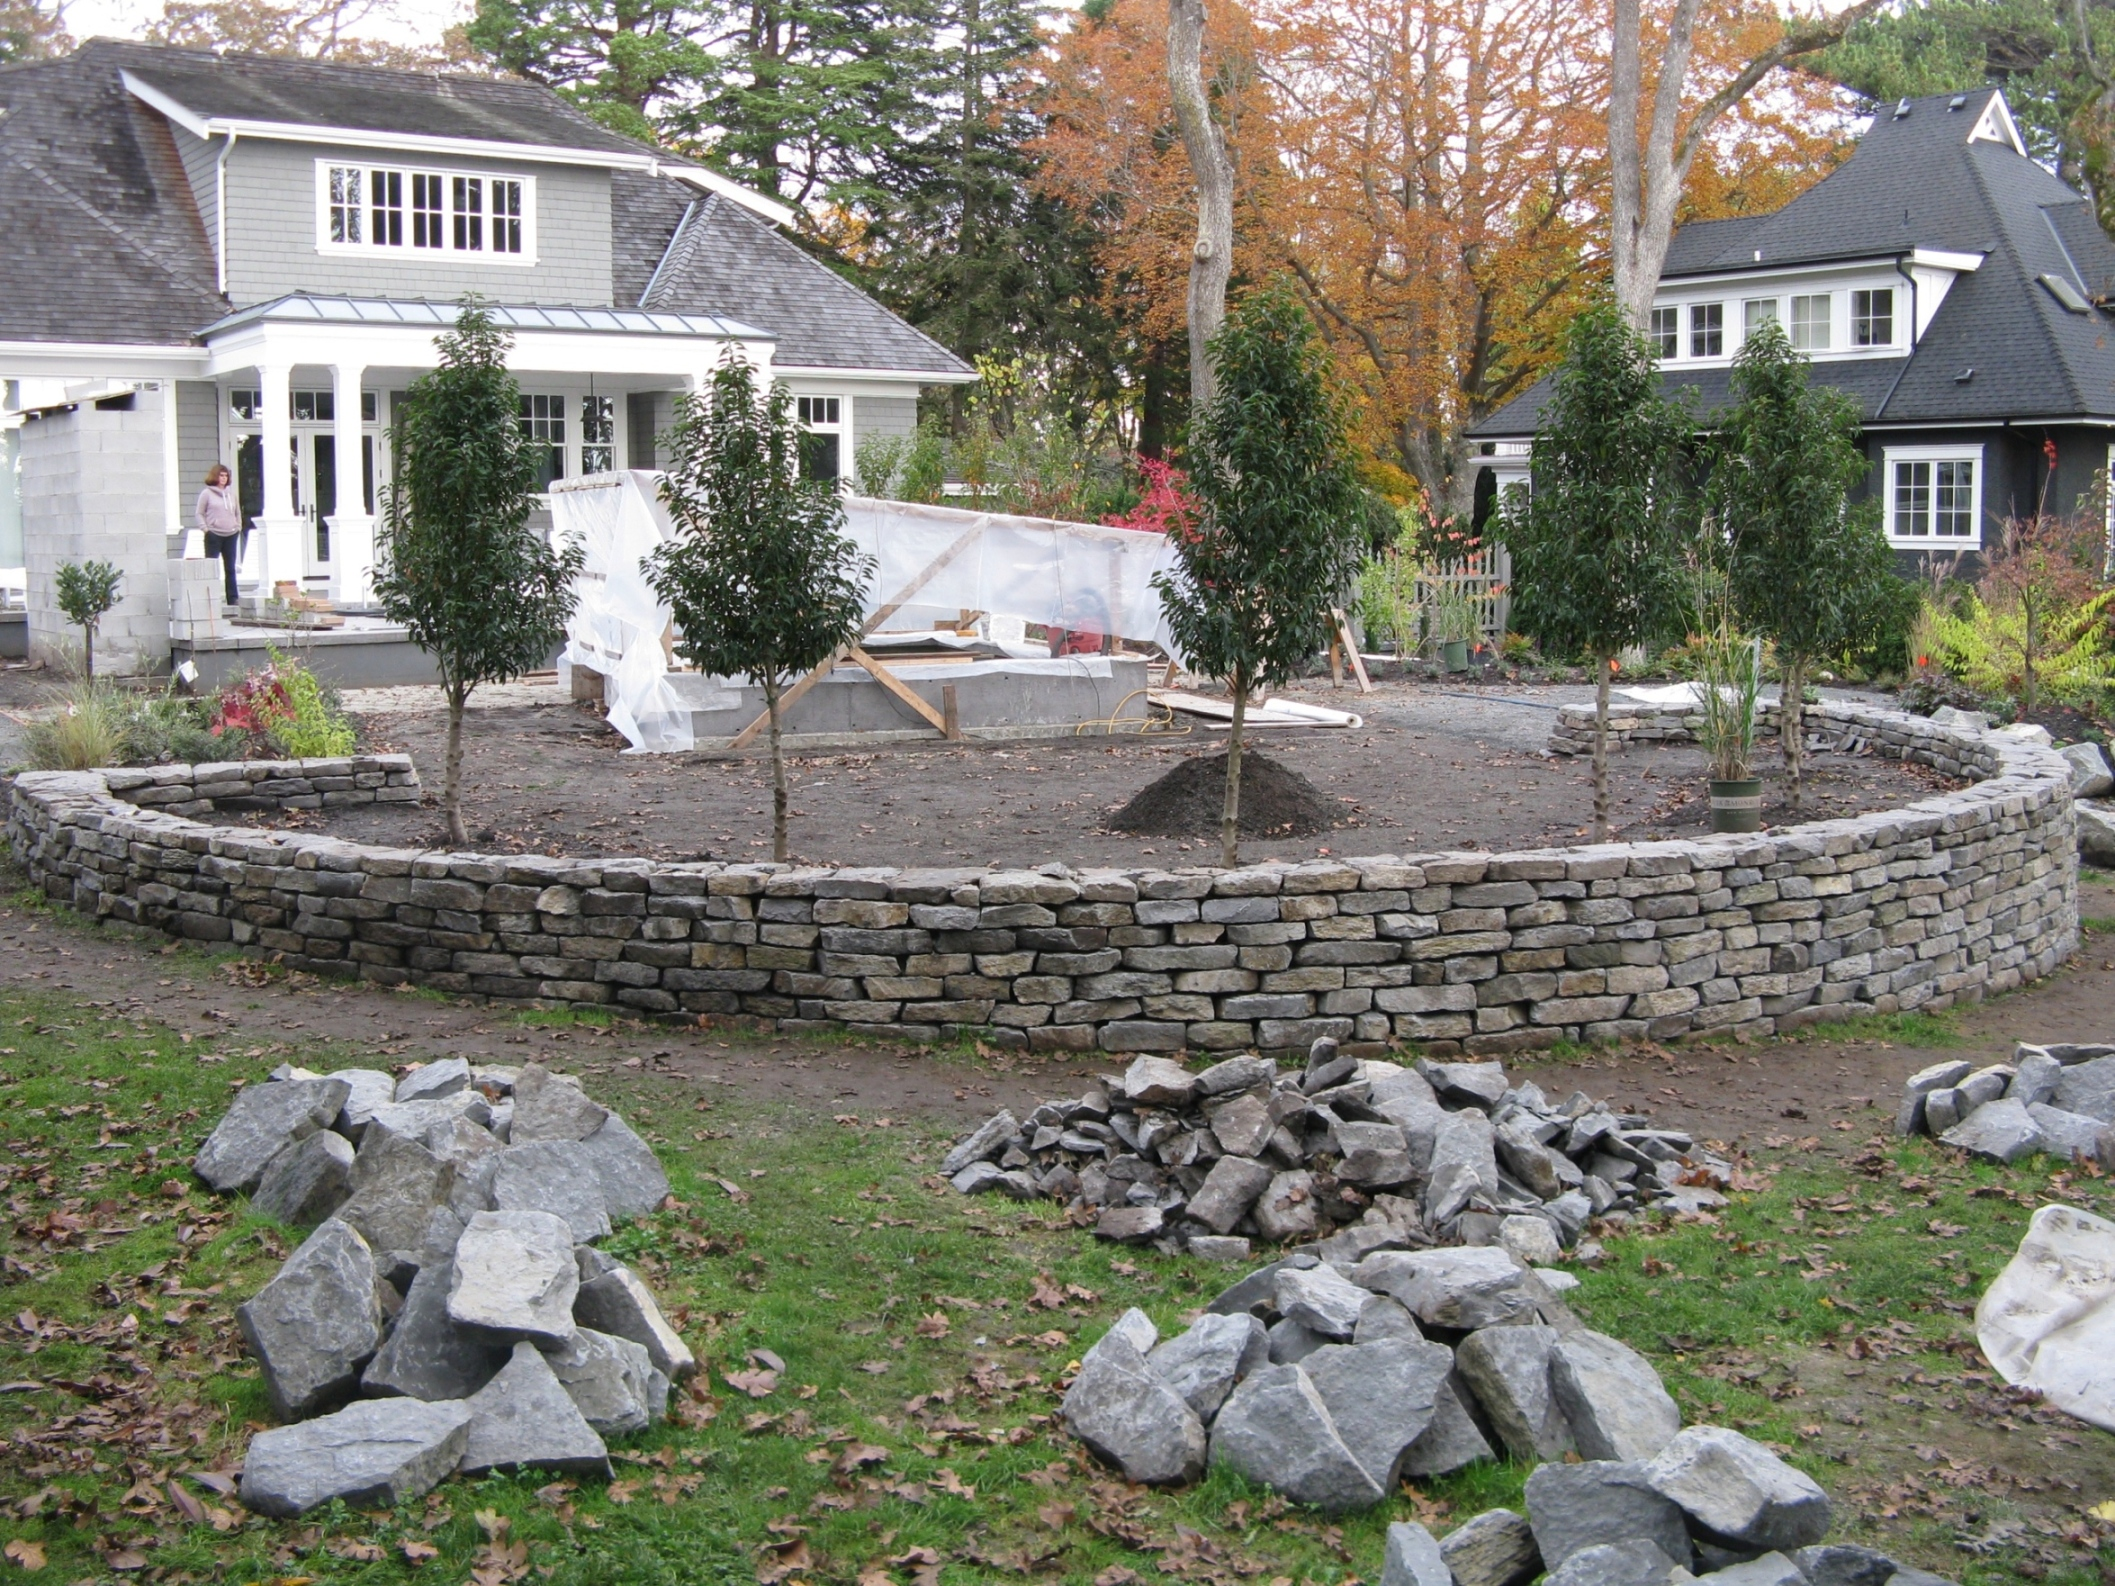 A circular wall of basalt is the central design element in this back yard renovation featuring a spa, outdoor fireplace and new garden